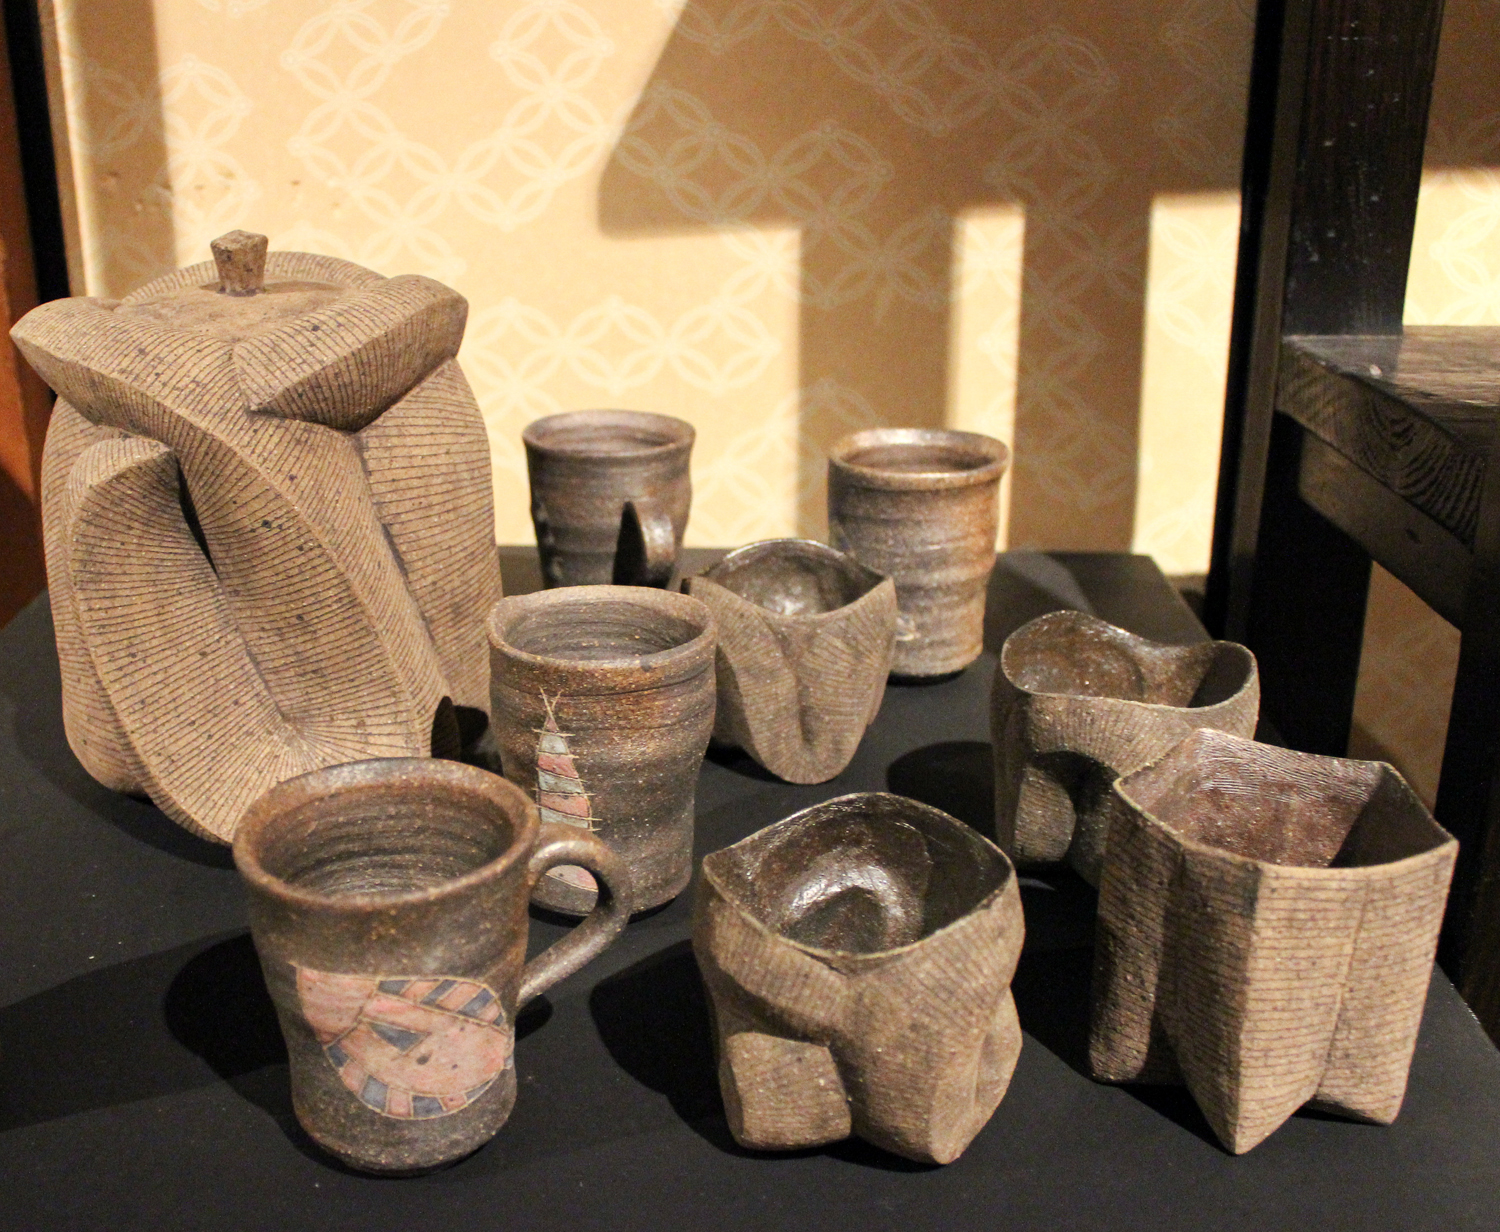 Artisans of Leisure explores Japan's centuries-old arts and crafts traditions with visits to artisans' studios and ceramics villages. (Photo credit:Artisans of Leisure)